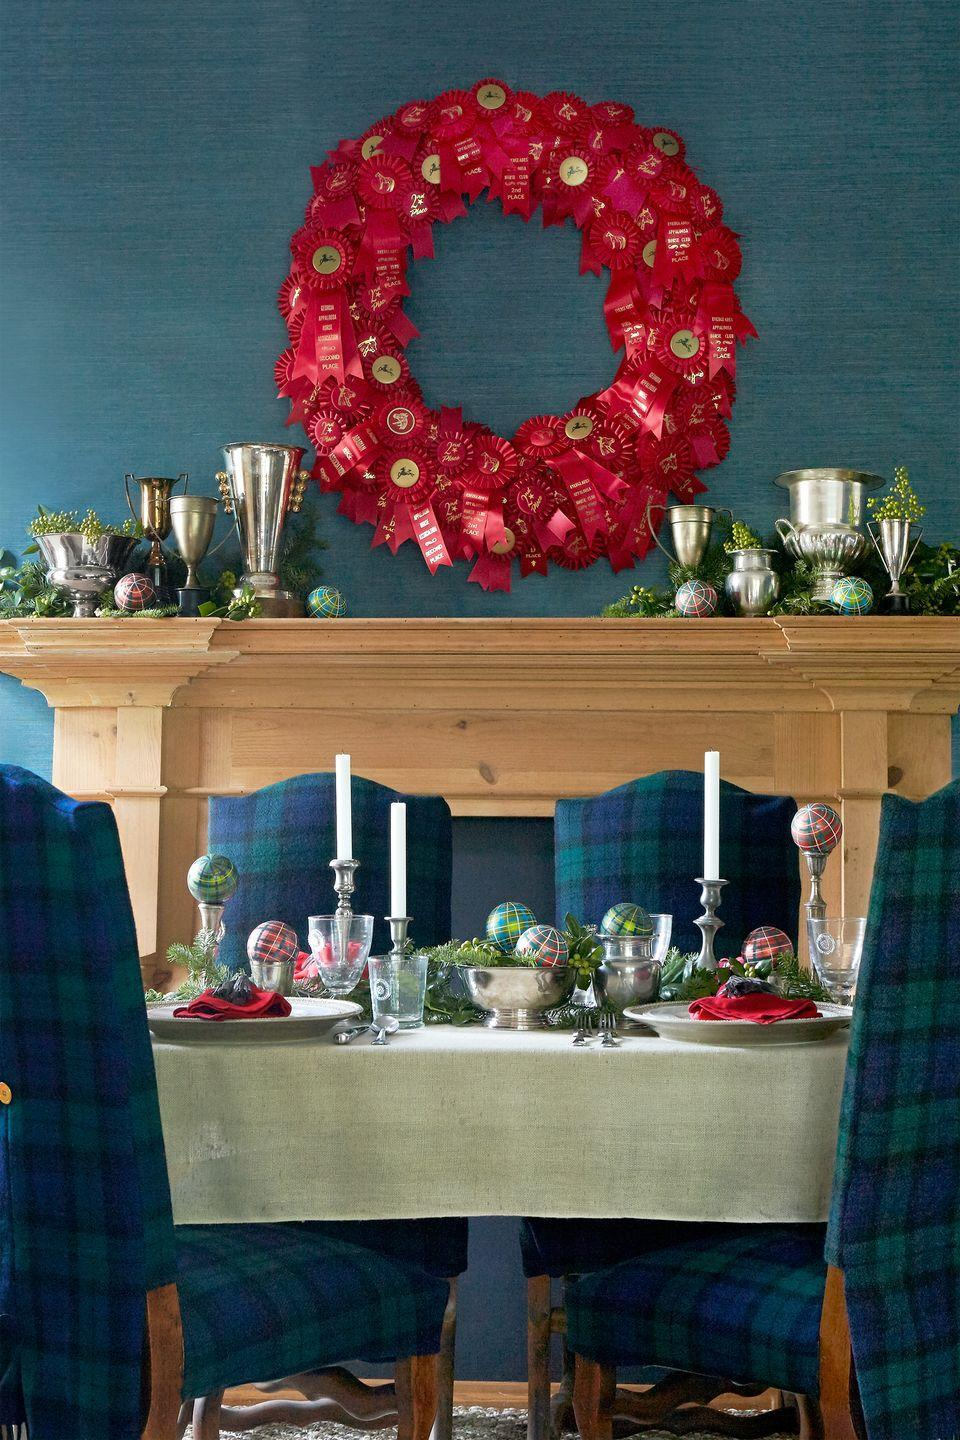 """<p><a href=""""https://www.countryliving.com/home-design/decorating-ideas/g2179/country-christmas-decorating-ideas/#slide-8"""" rel=""""nofollow noopener"""" target=""""_blank"""" data-ylk=""""slk:Equine escapes"""" class=""""link rapid-noclick-resp"""">Equine escapes</a> like Lexington, Kentucky, and Millbrook, New York, inspired this tailored and traditional dining room. Finds like plaid ornaments and a <a href=""""https://www.countryliving.com/diy-crafts/how-to/g1056/diy-wreath-ideas/#slide-1"""" rel=""""nofollow noopener"""" target=""""_blank"""" data-ylk=""""slk:homemade wreath"""" class=""""link rapid-noclick-resp"""">homemade wreath</a> made of vintage horse show ribbons complete the look.</p><p><a class=""""link rapid-noclick-resp"""" href=""""https://www.amazon.com/s/ref=nb_sb_noss?url=search-alias%3Daps&field-keywords=plaid+ball+ornaments&rh=i%3Aaps%2Ck%3Aplaid+ball+ornaments&tag=syn-yahoo-20&ascsubtag=%5Bartid%7C10050.g.1247%5Bsrc%7Cyahoo-us"""" rel=""""nofollow noopener"""" target=""""_blank"""" data-ylk=""""slk:SHOP PLAID ORNAMENTS"""">SHOP PLAID ORNAMENTS</a></p>"""